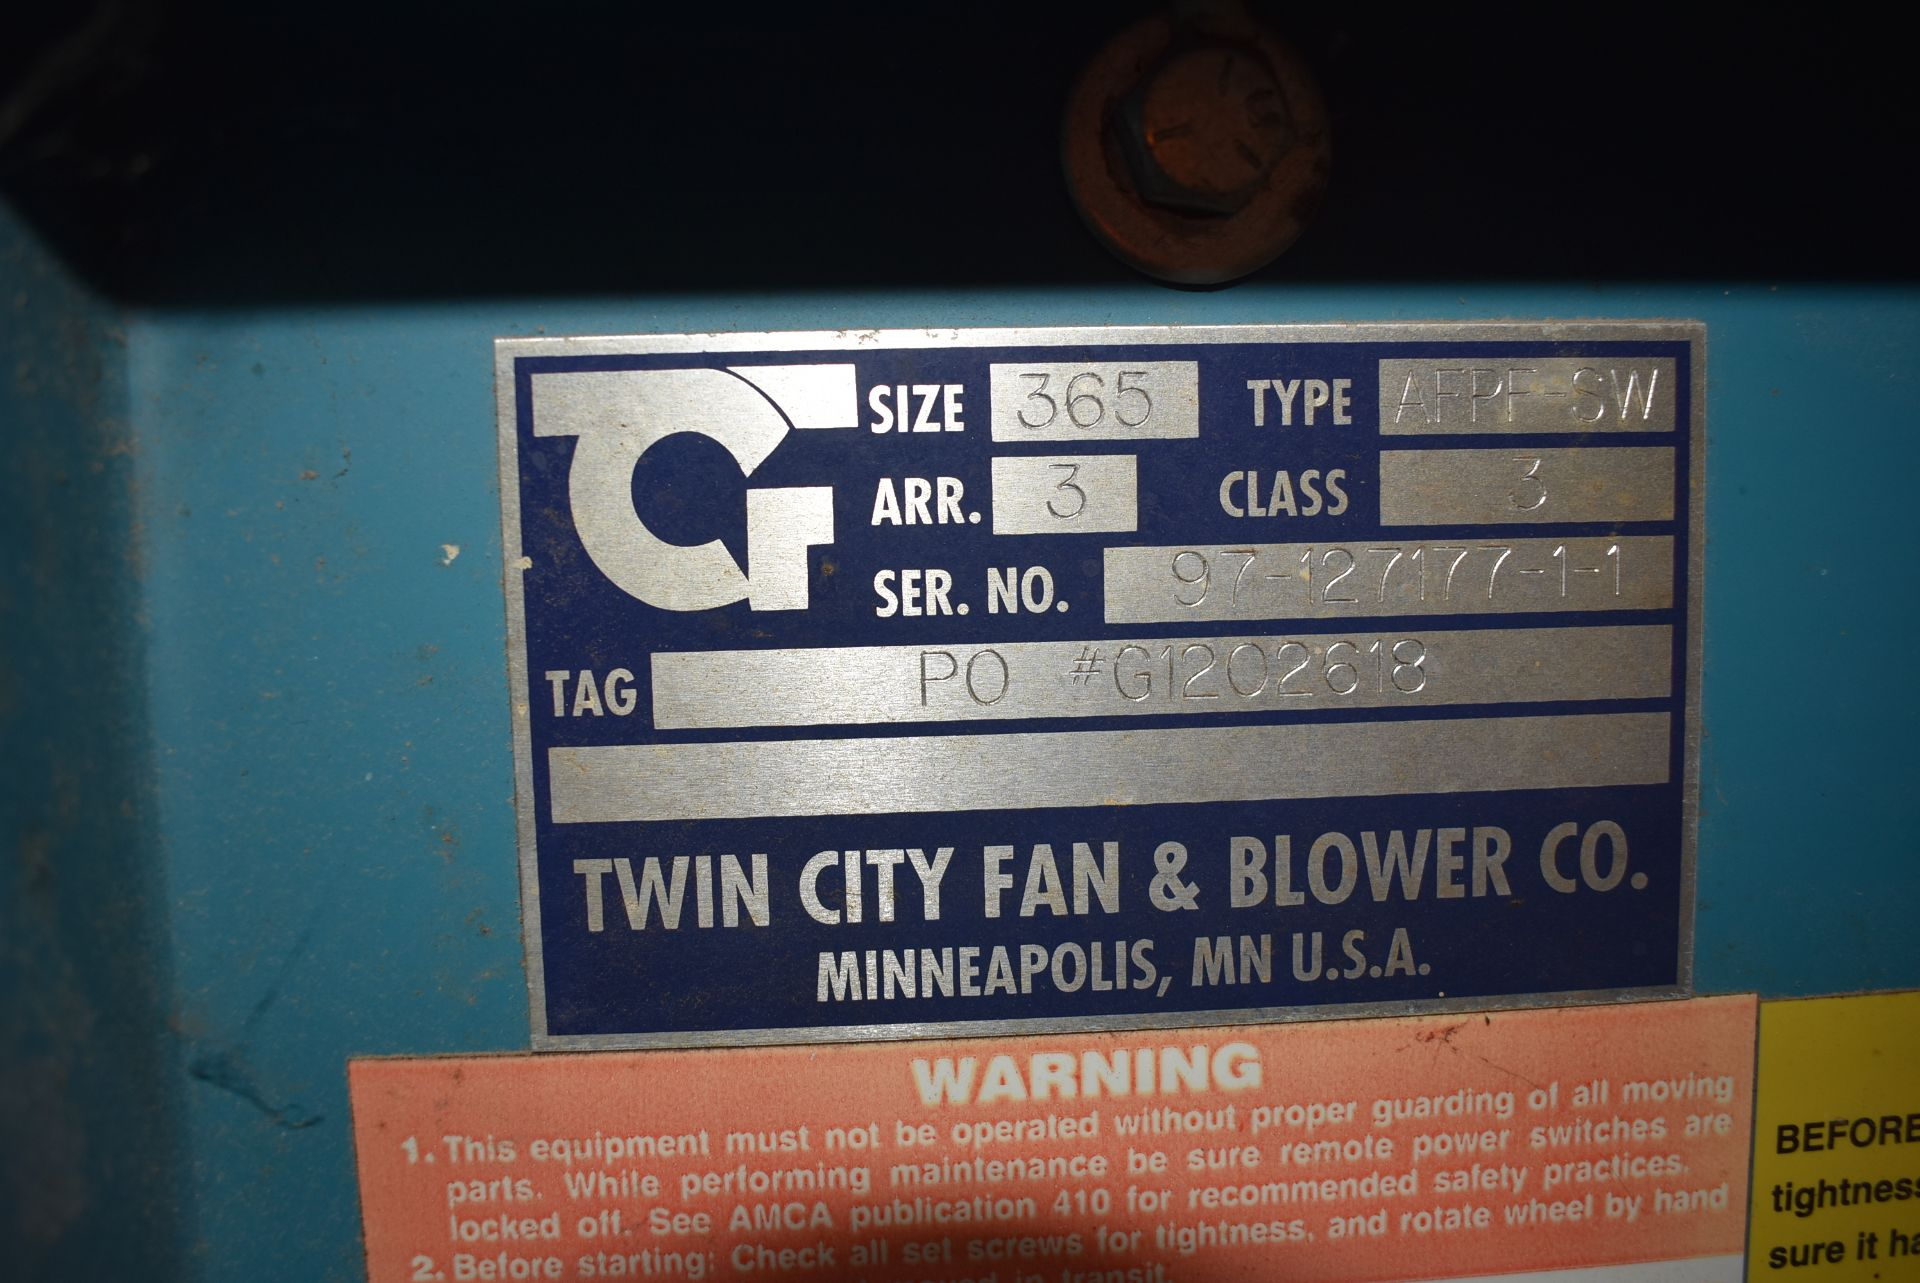 Twin City Type AFPP-SW Blower, Size 36 w/Enclosure - Image 2 of 4